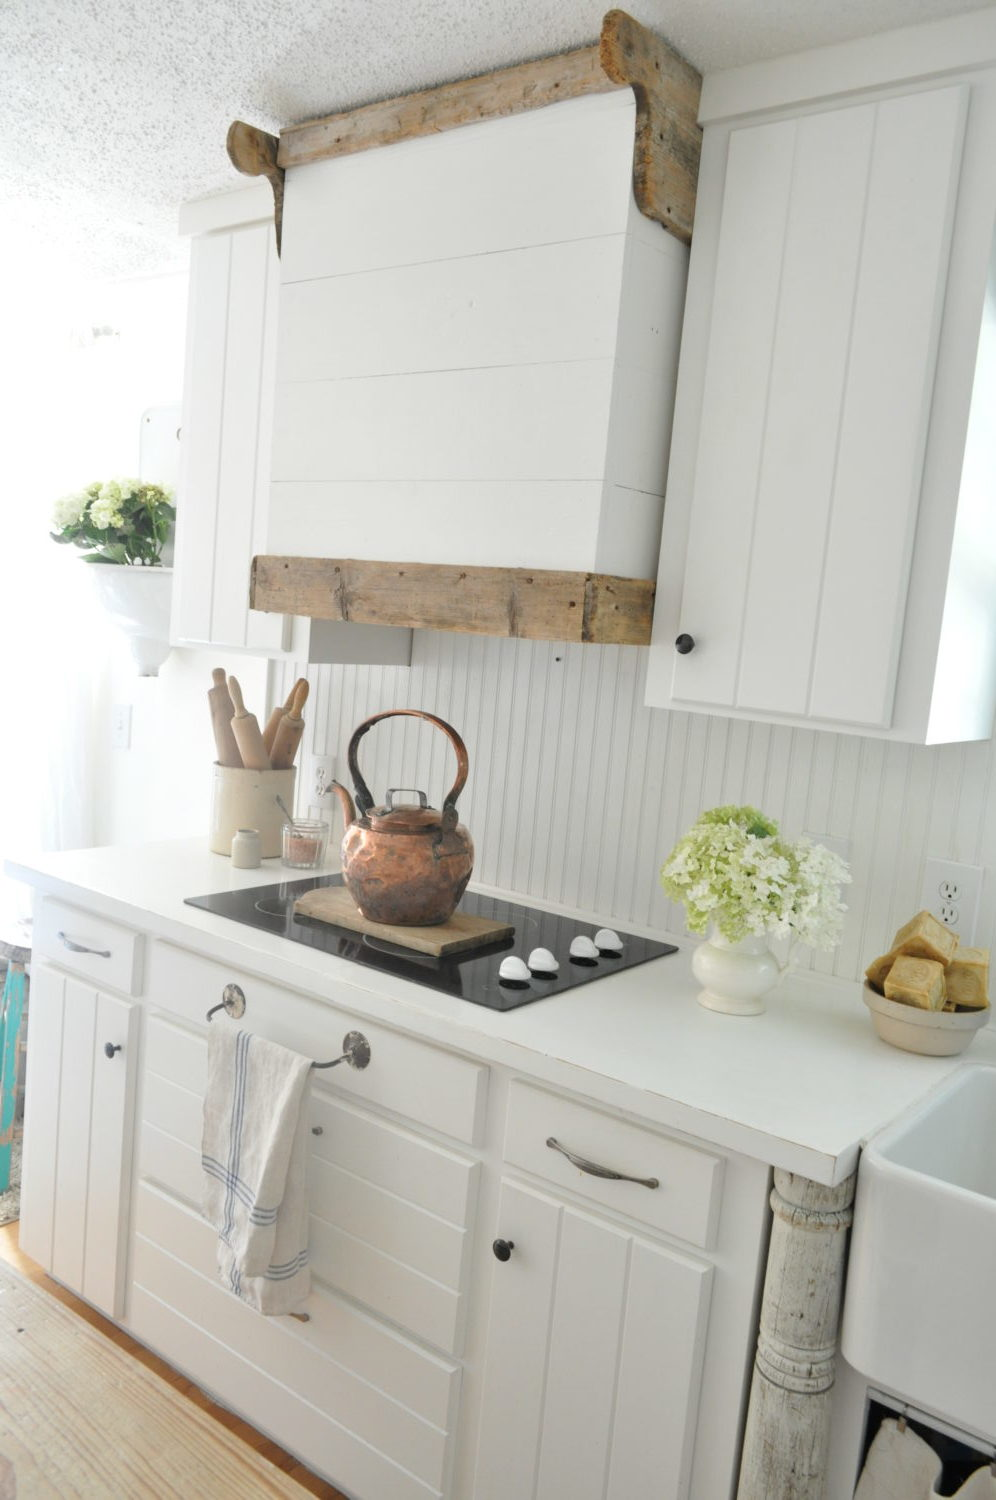 The wood accents in this kitchen against all the white cabinets works well.